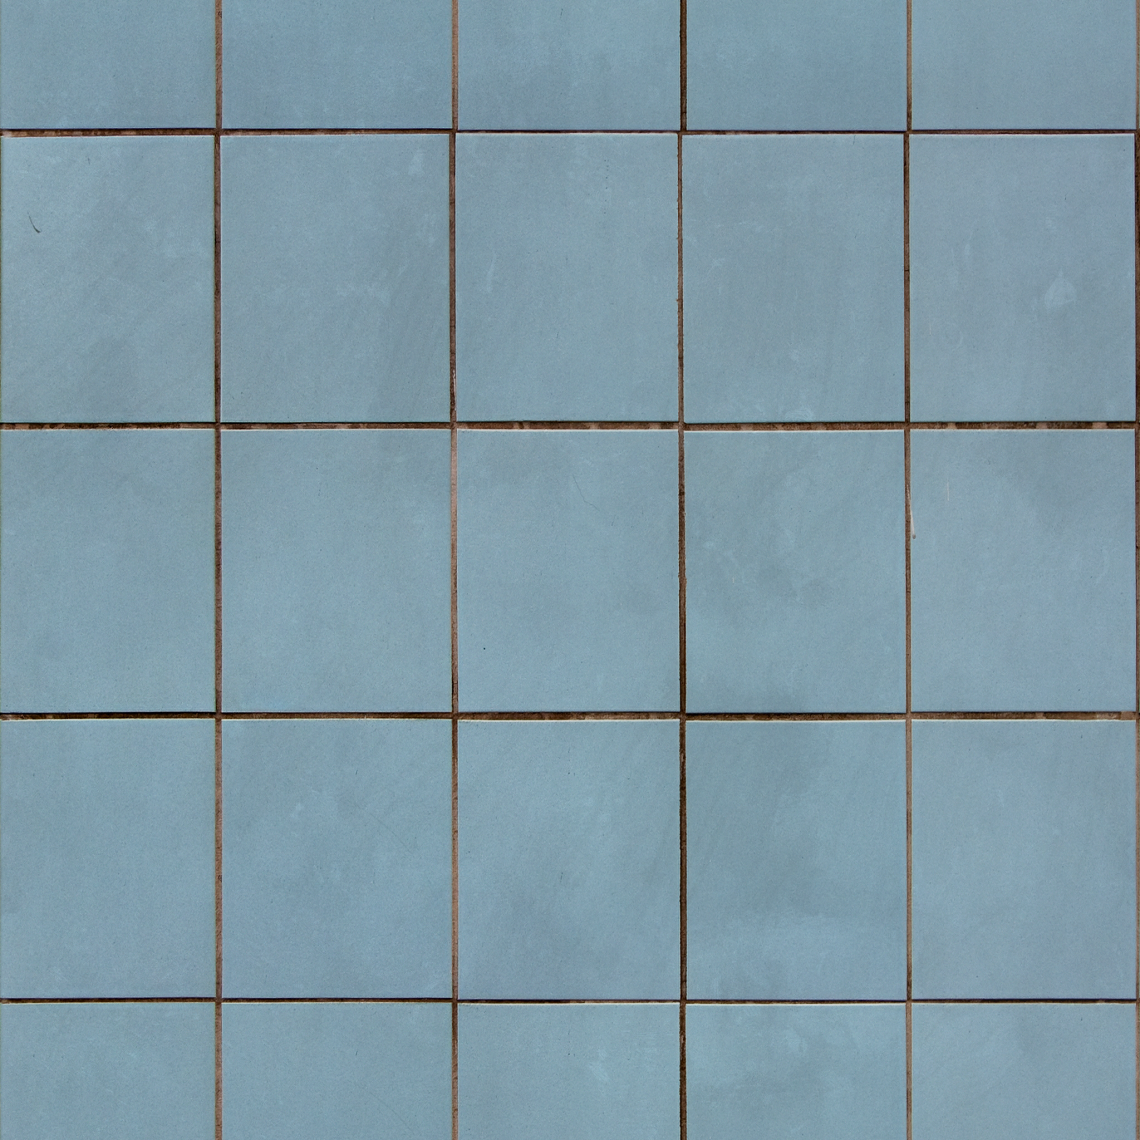 Simple-Tiles-01-Albedo - Seamless